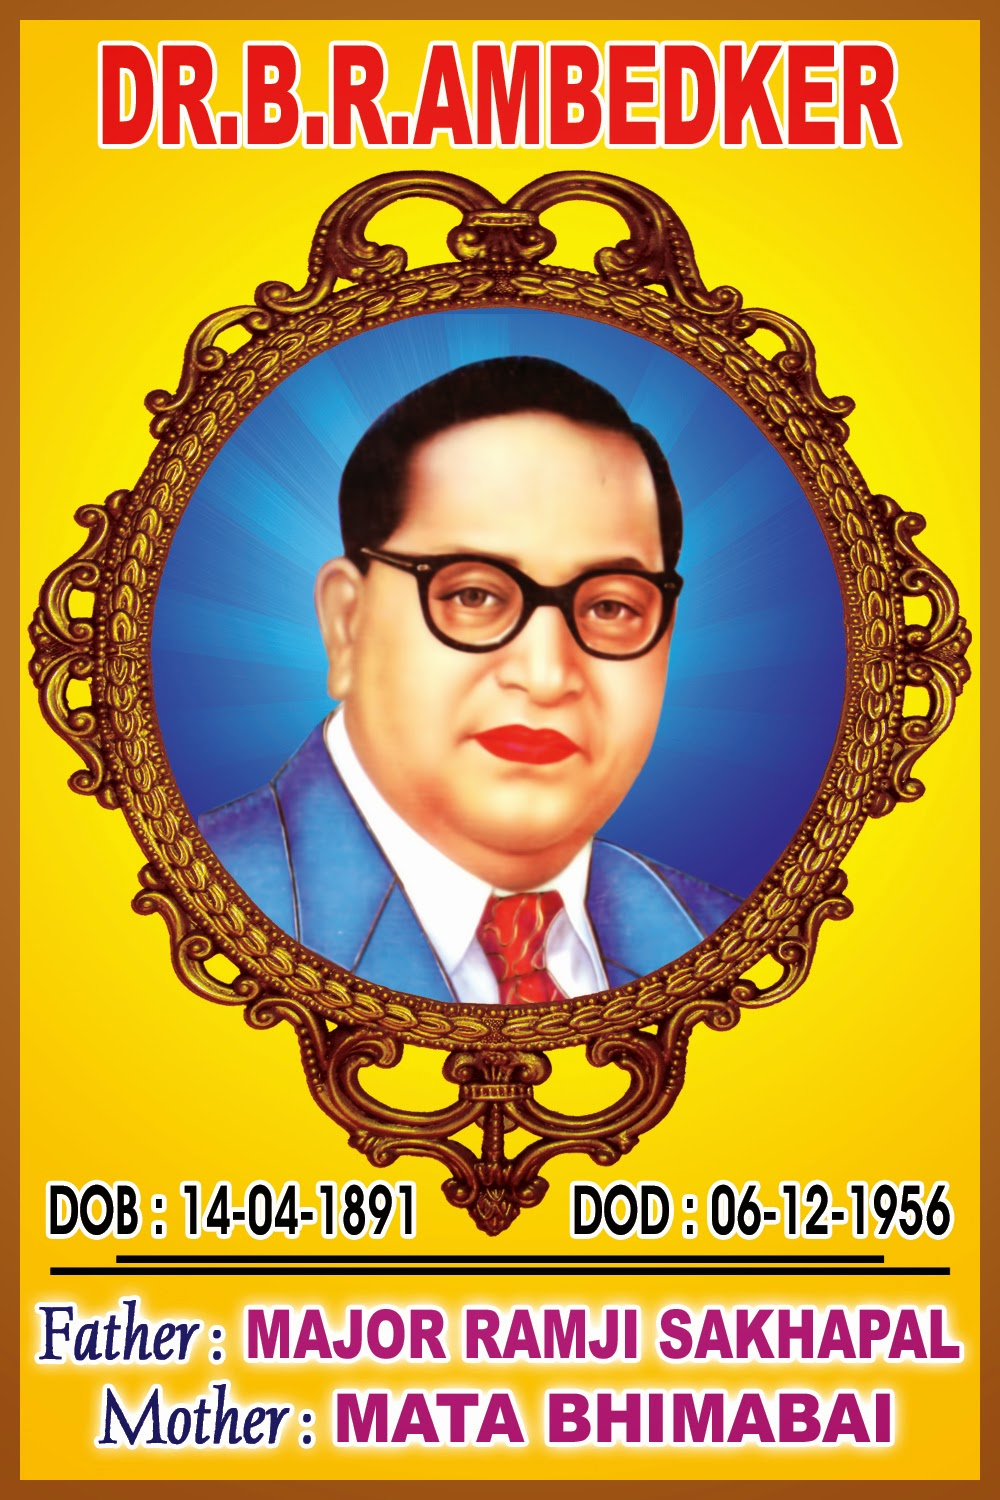 freedom-fighter-Dr-Br-ambedker-images-with-names-naveengfx.com